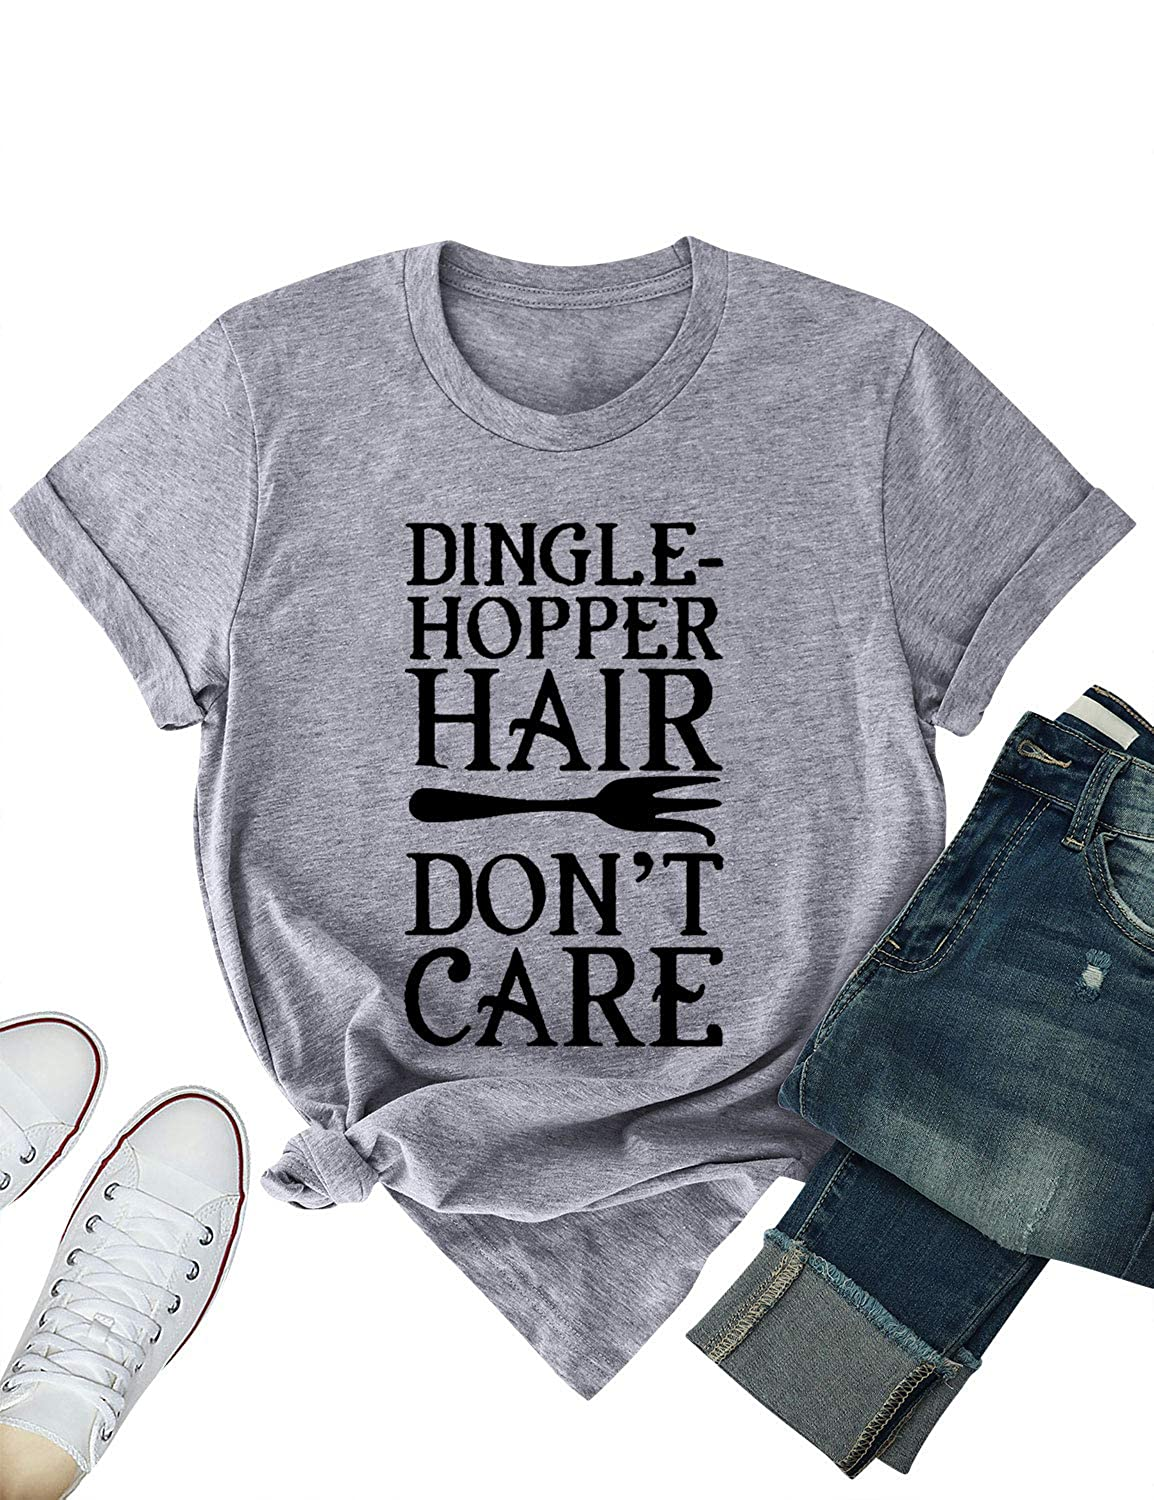 Nlife Women Dingle-Hopper Hair Don't Care T-Shirt Solid Color Casual Tops Tee